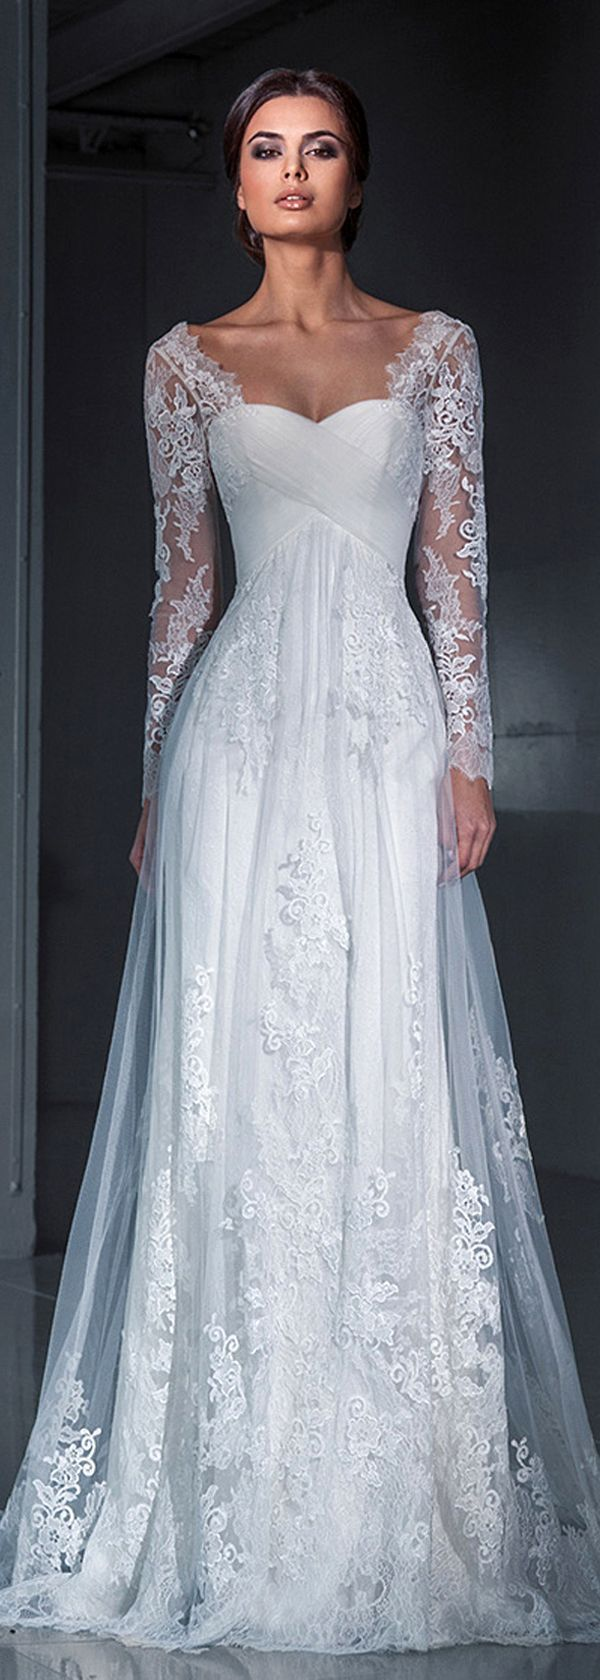 Top gorgeous wedding dresses with long sleeves lace applique